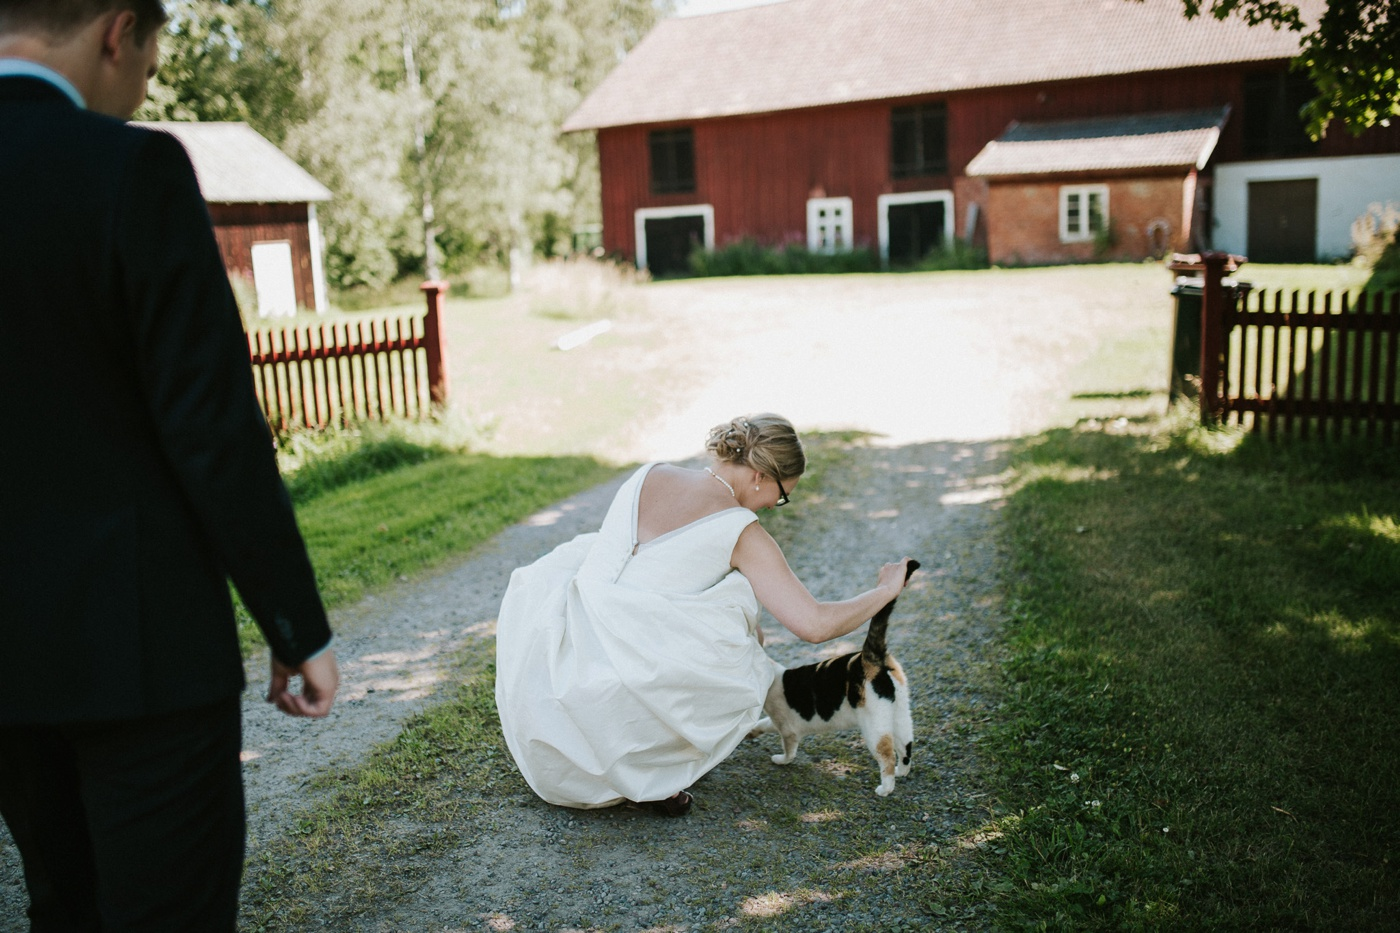 ceciliajoakim_sweden-countryside-summer-wedding_melbourne-fun-quirky-wedding-photography_50